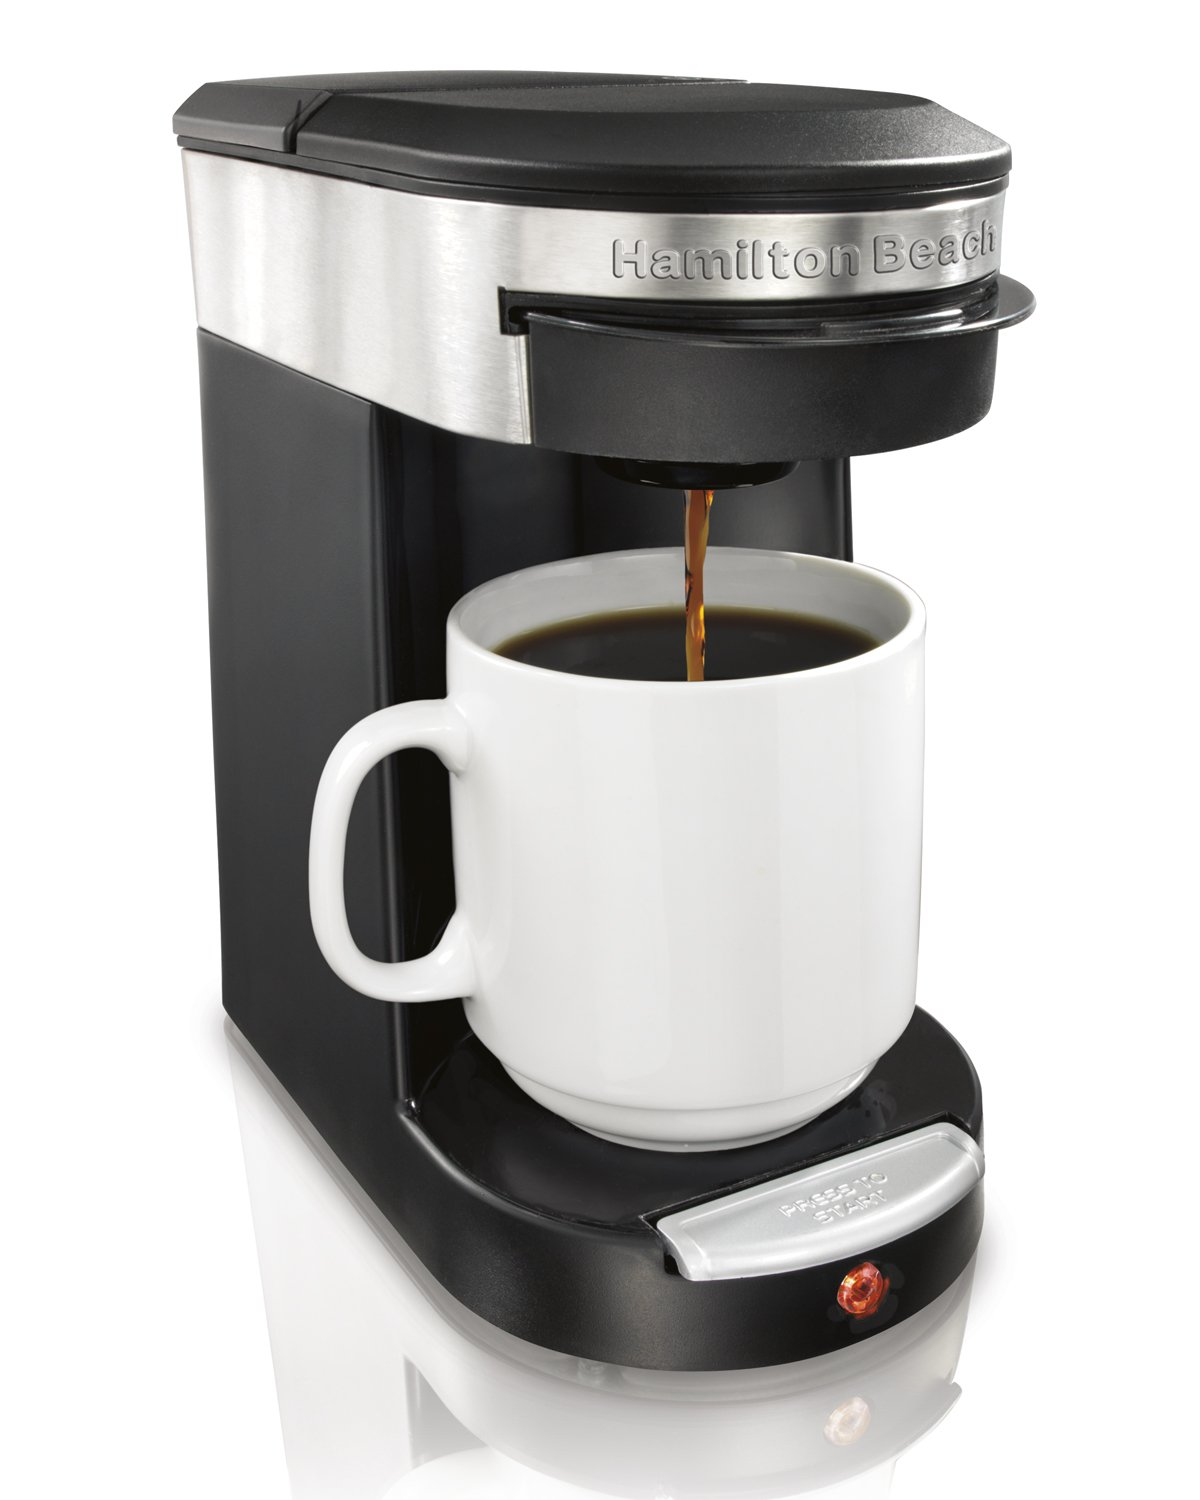 Hamilton Beach Personal Cup One Cup Pod Brewer